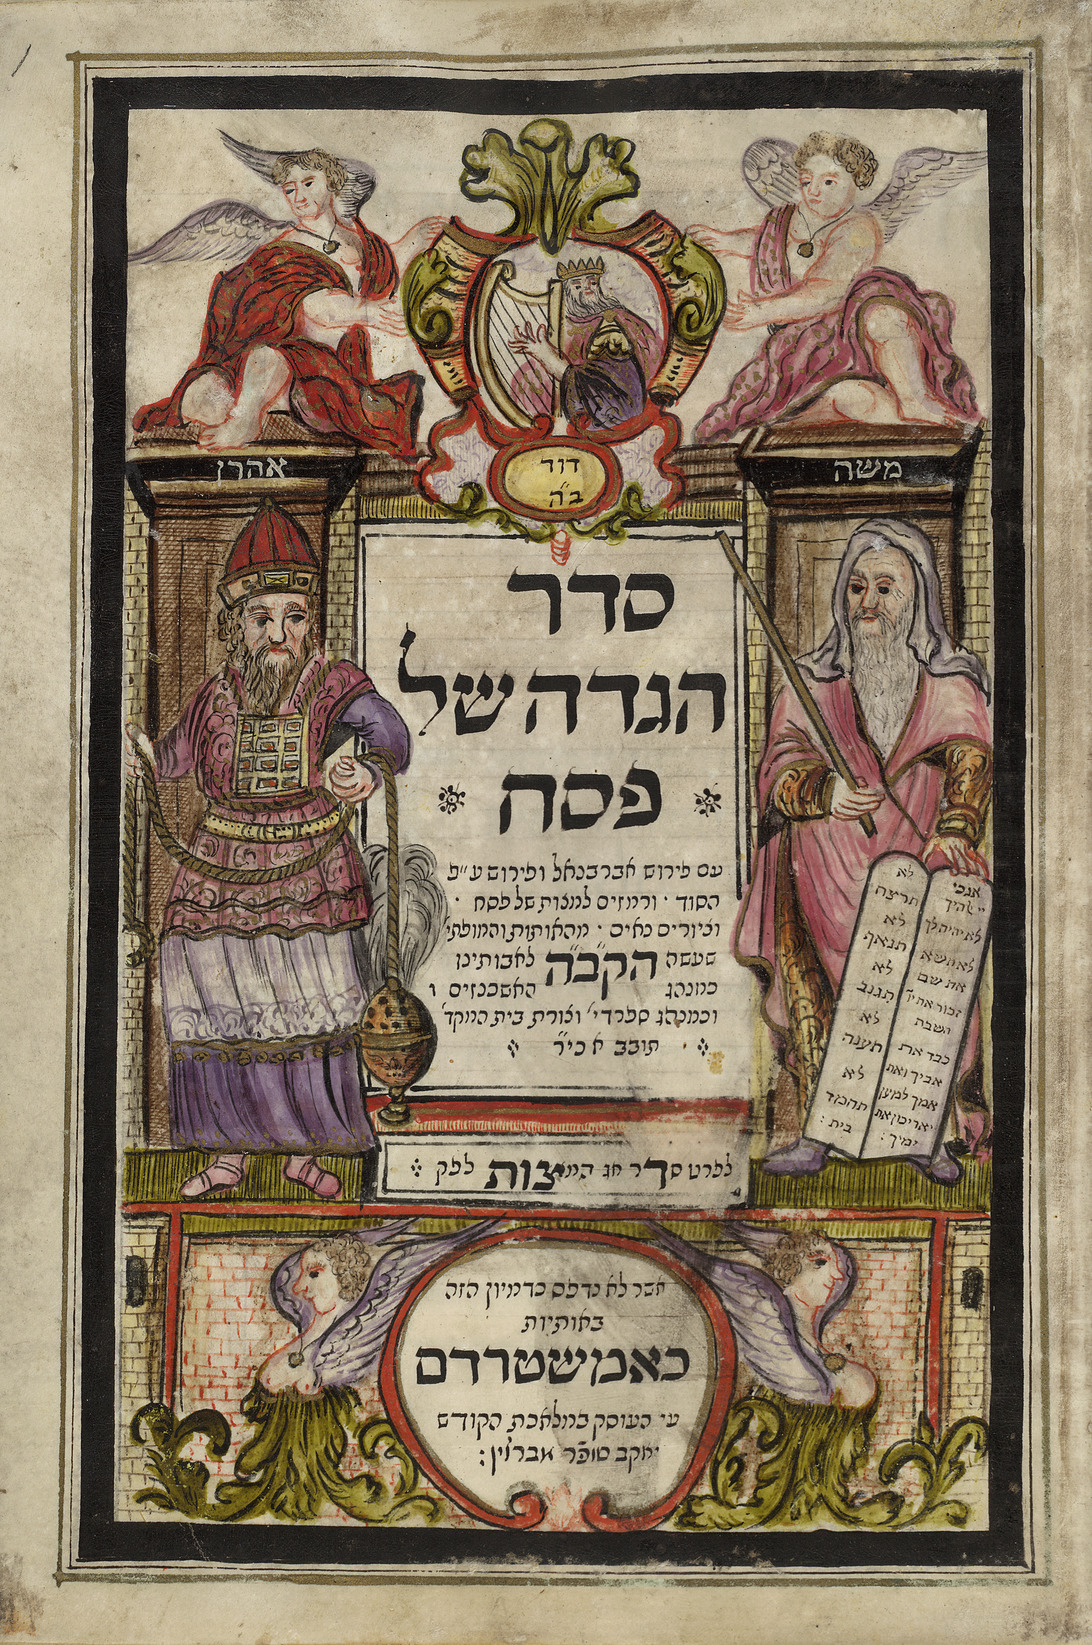 Moses, Aaron the High Priest and King David - Passover Haggadah (1740)